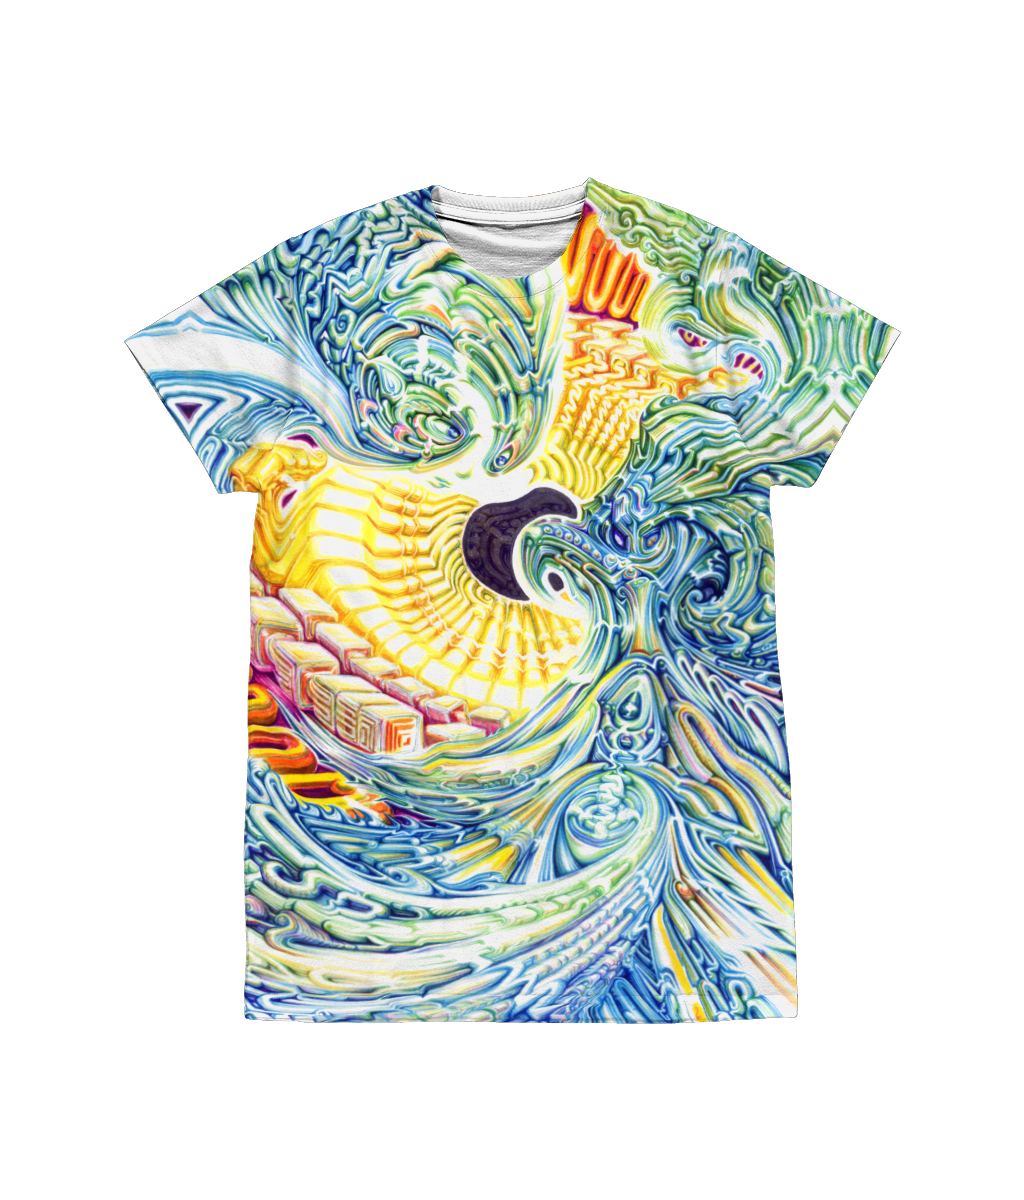 270720 Unisex All-Over Sublimation T